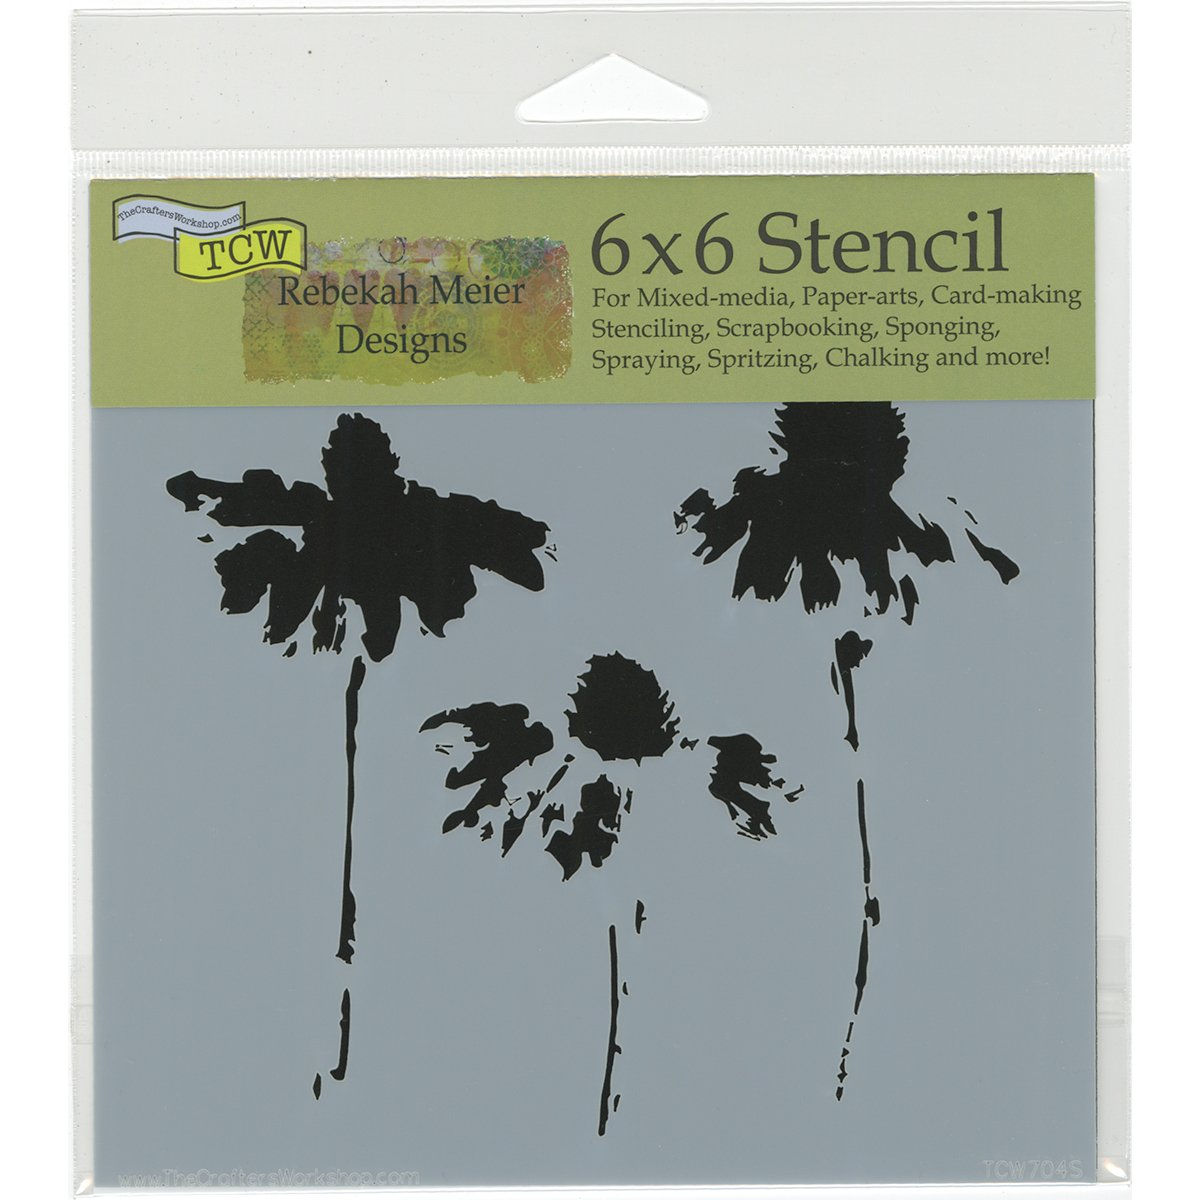 18 x 16 x 0.1 cm The Crafters Workshop Tile Mania Stencil 6 x 6-Inch Transparent